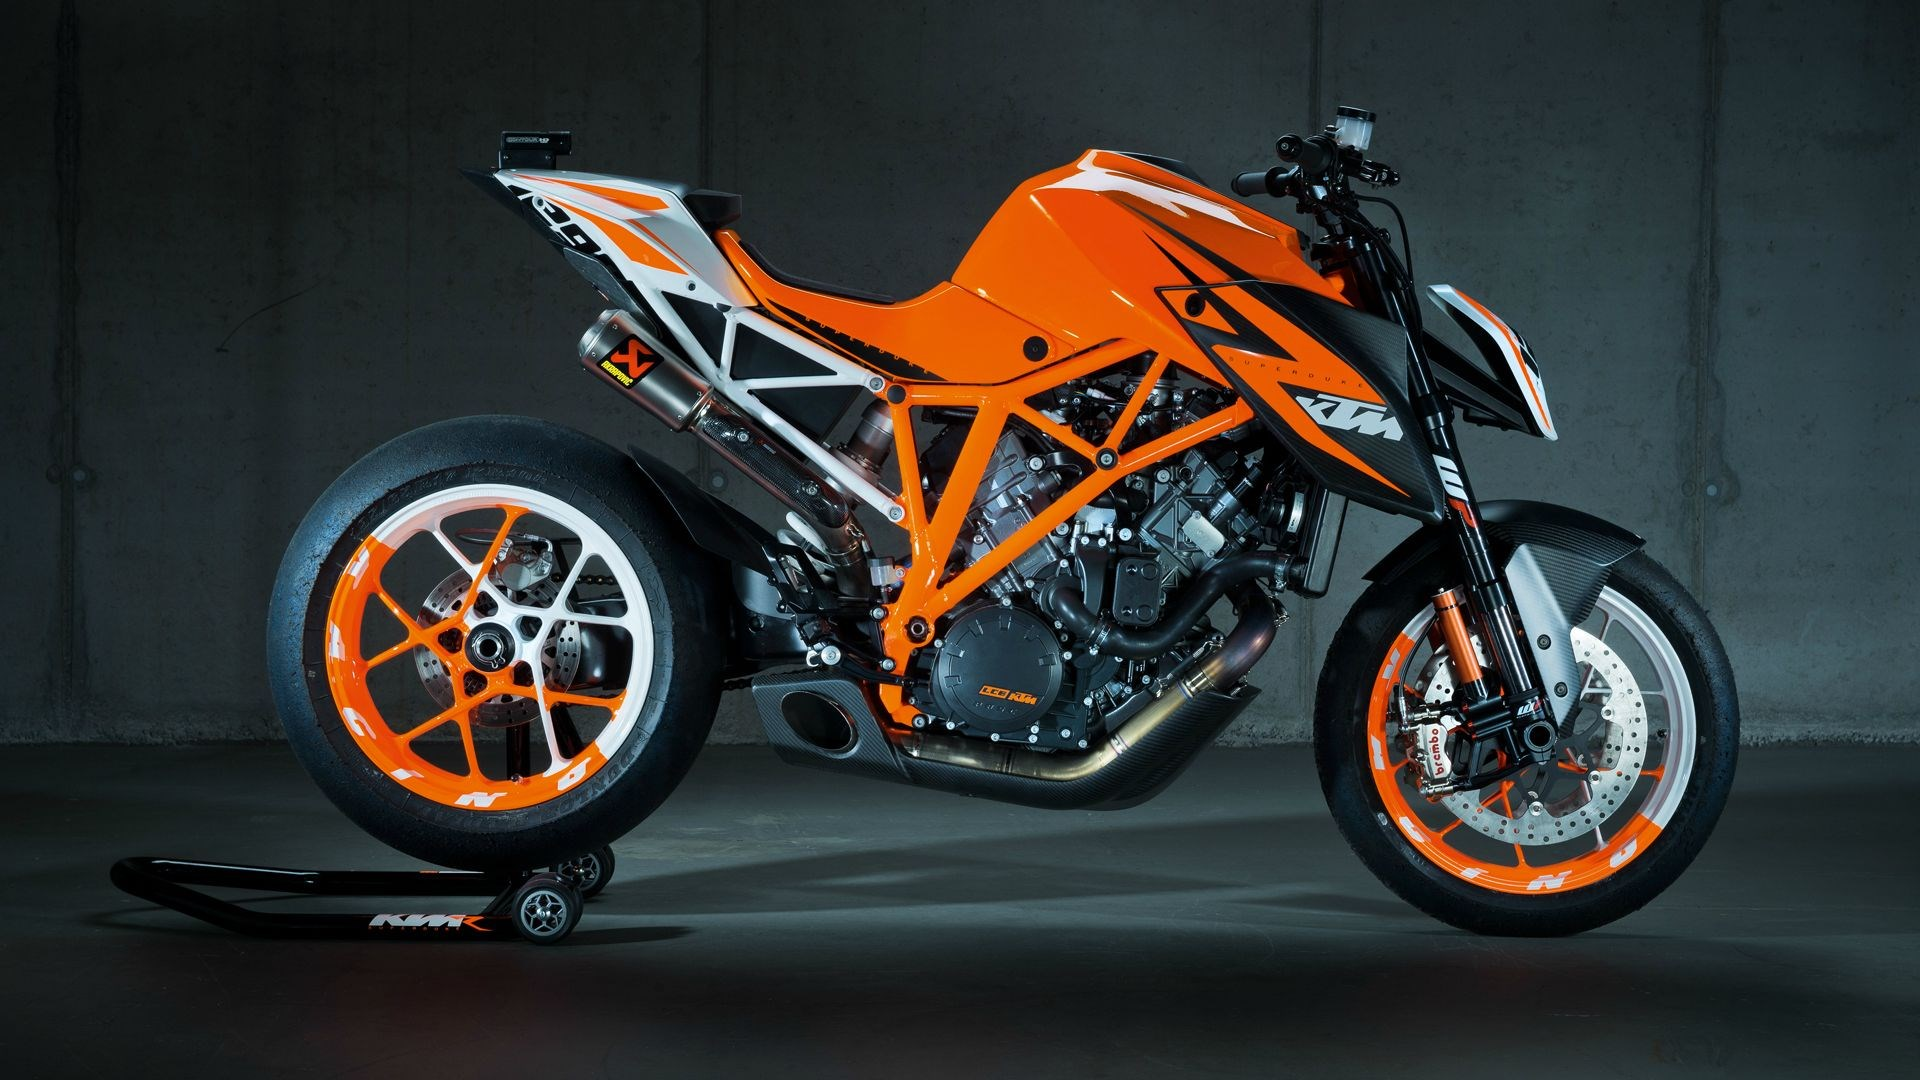 1920x1080px-ktm-hd-by-Weather-Robin-wallpaper-wp3401019